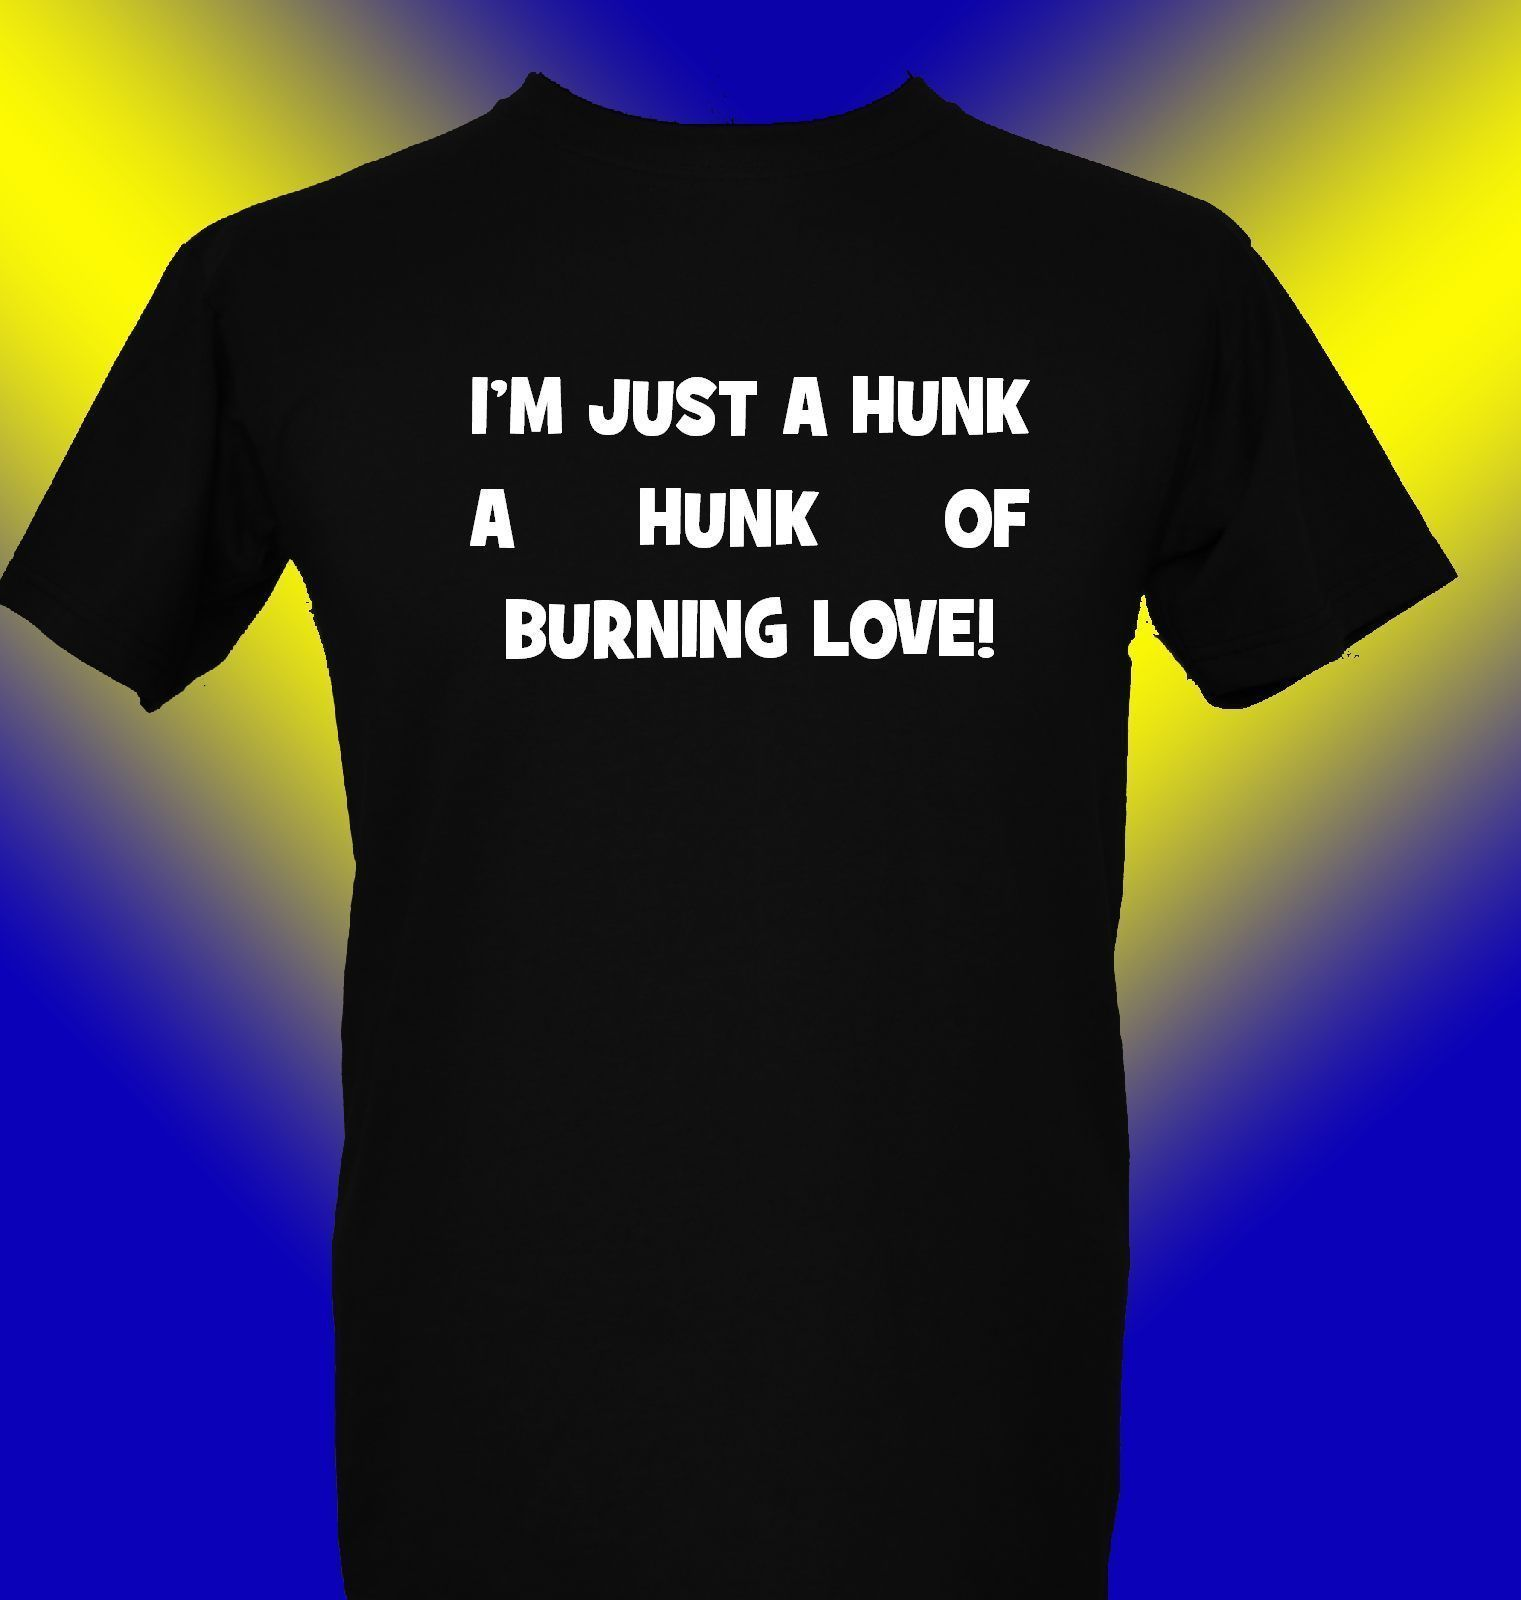 Elvis Presley Inspired T-Shirt Funny Hunk of Burning Love Great Gift Fashion New Top Tees T Shirts Funny O-Neck T Shirt